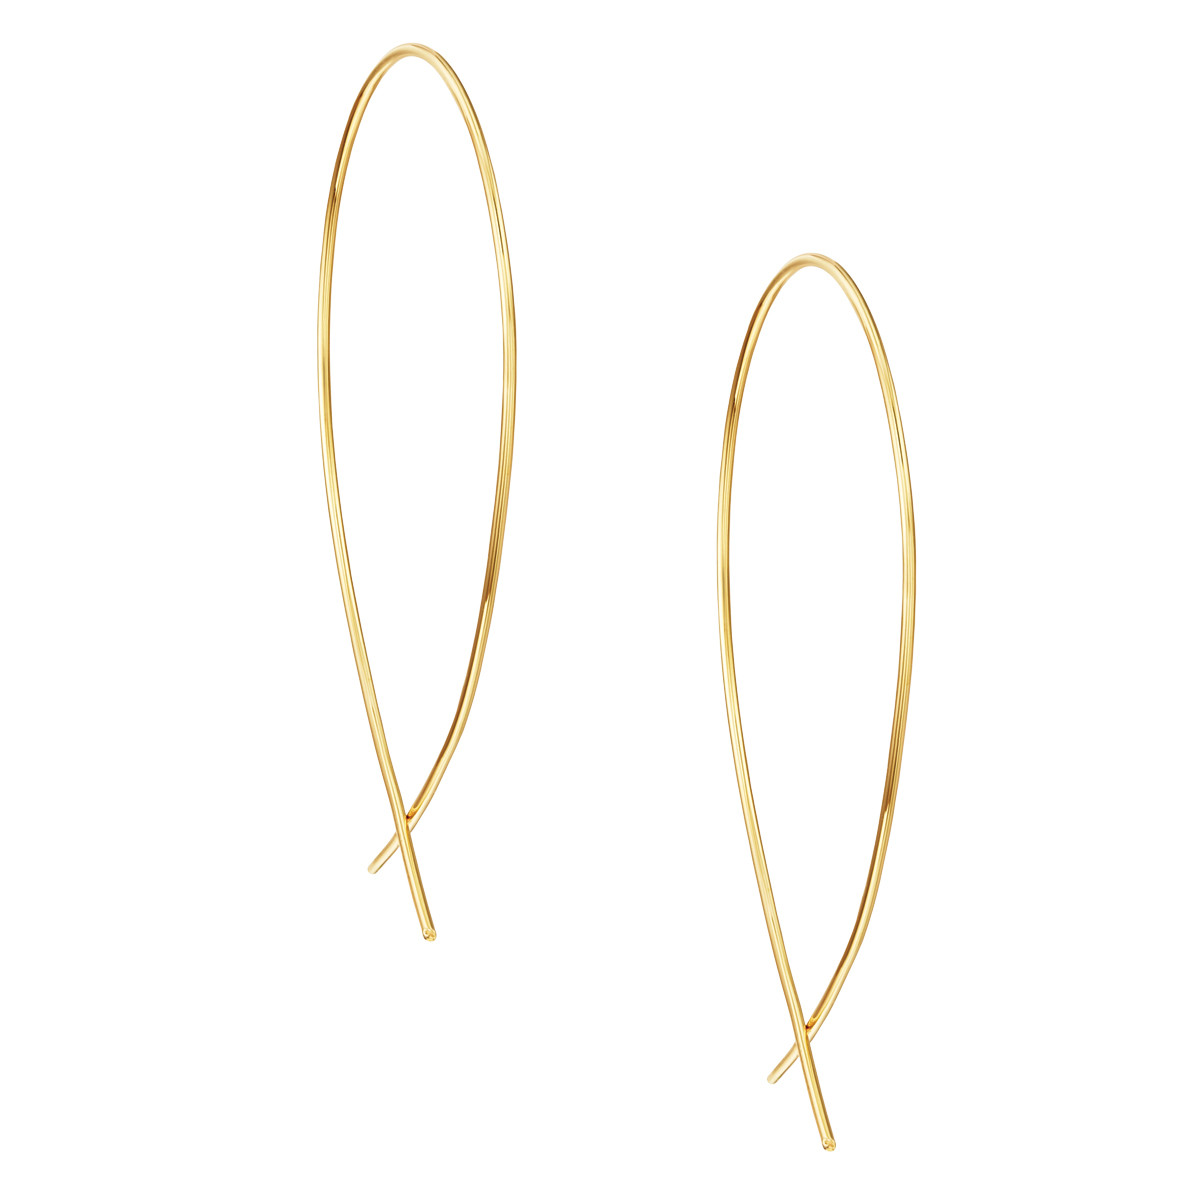 Lana Jewelry Upside Down Hoop Earrings